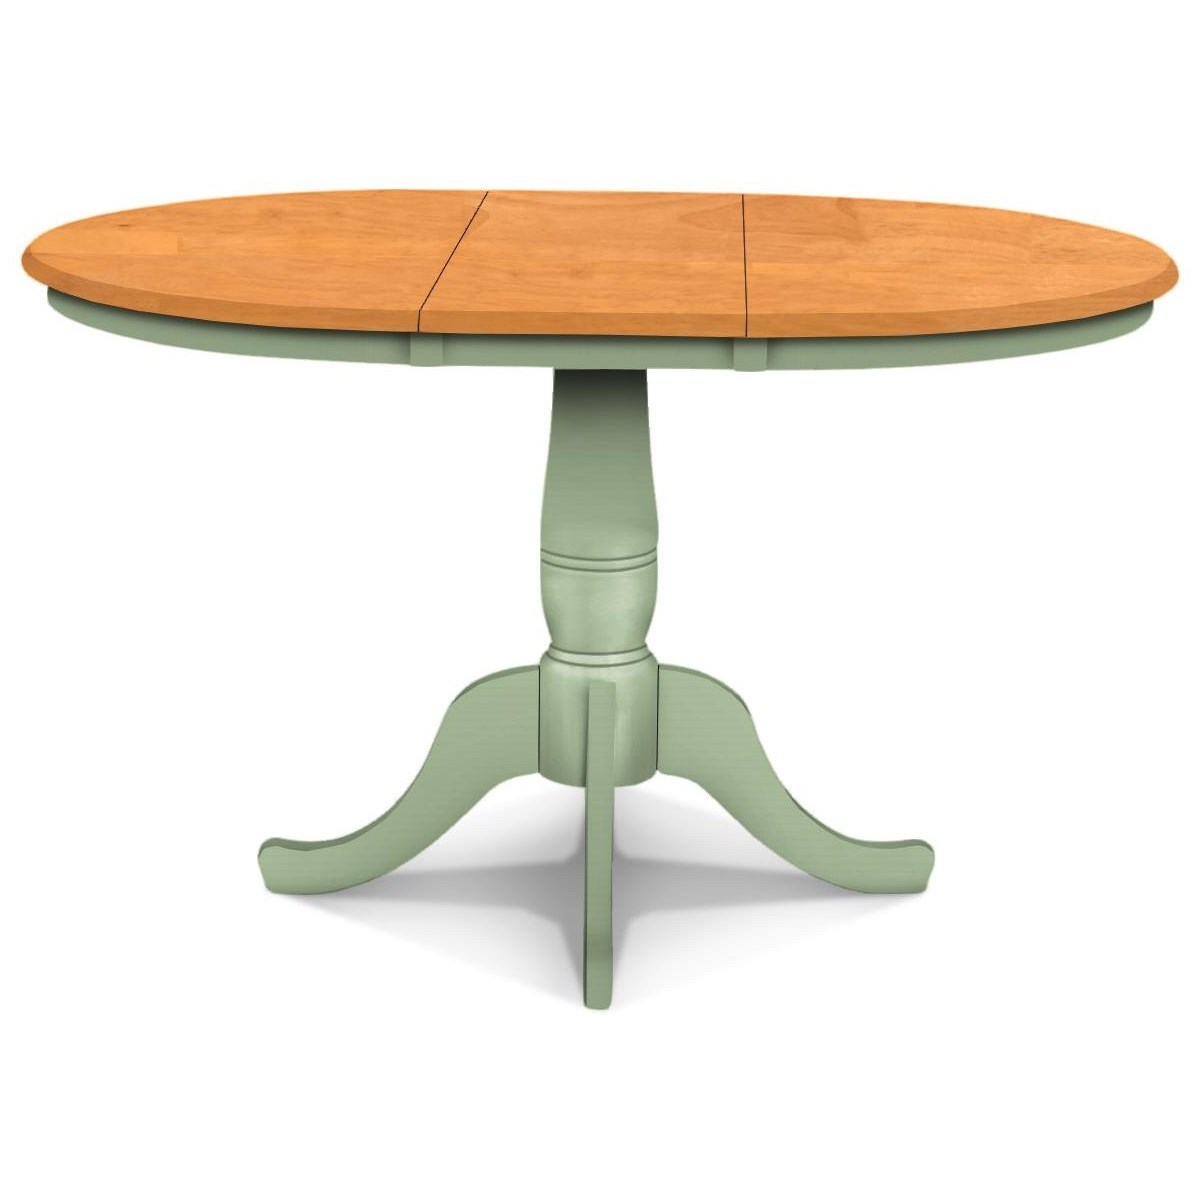 Adjustable Height Round Pedestal Table